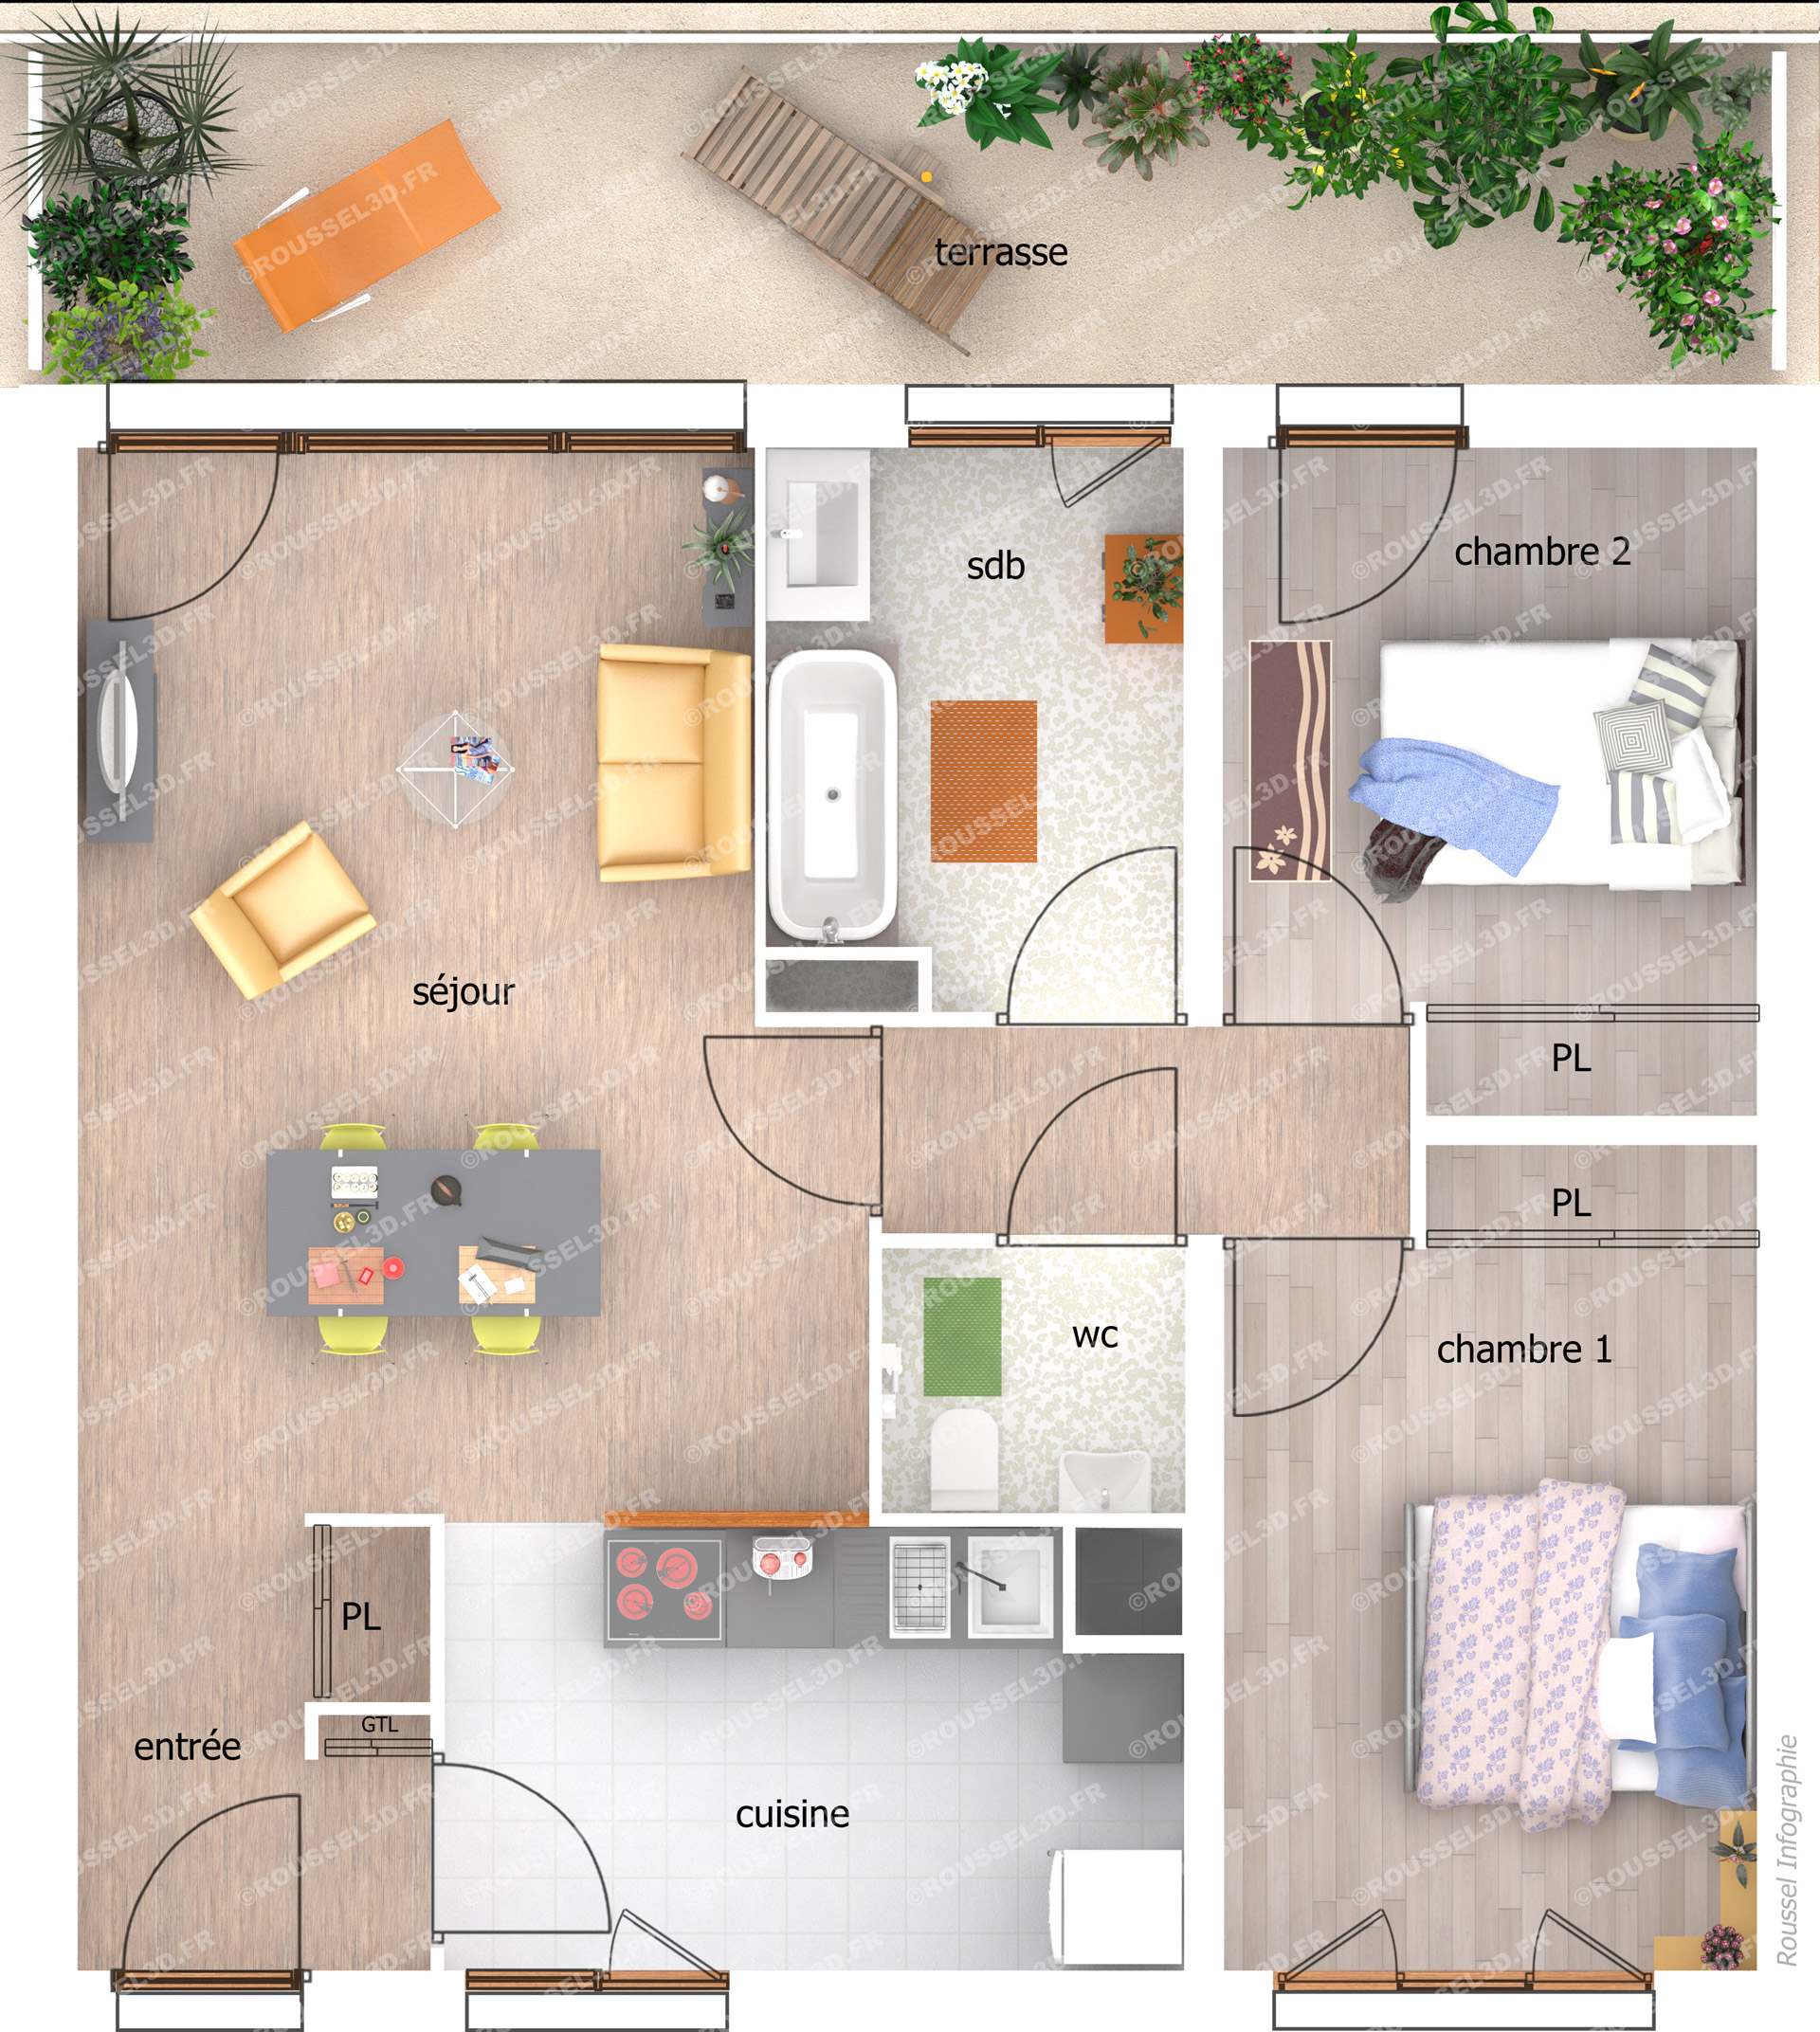 Charming faire son plan de maison en d plandt with faire son plan de maison for Plan de travail fait maison